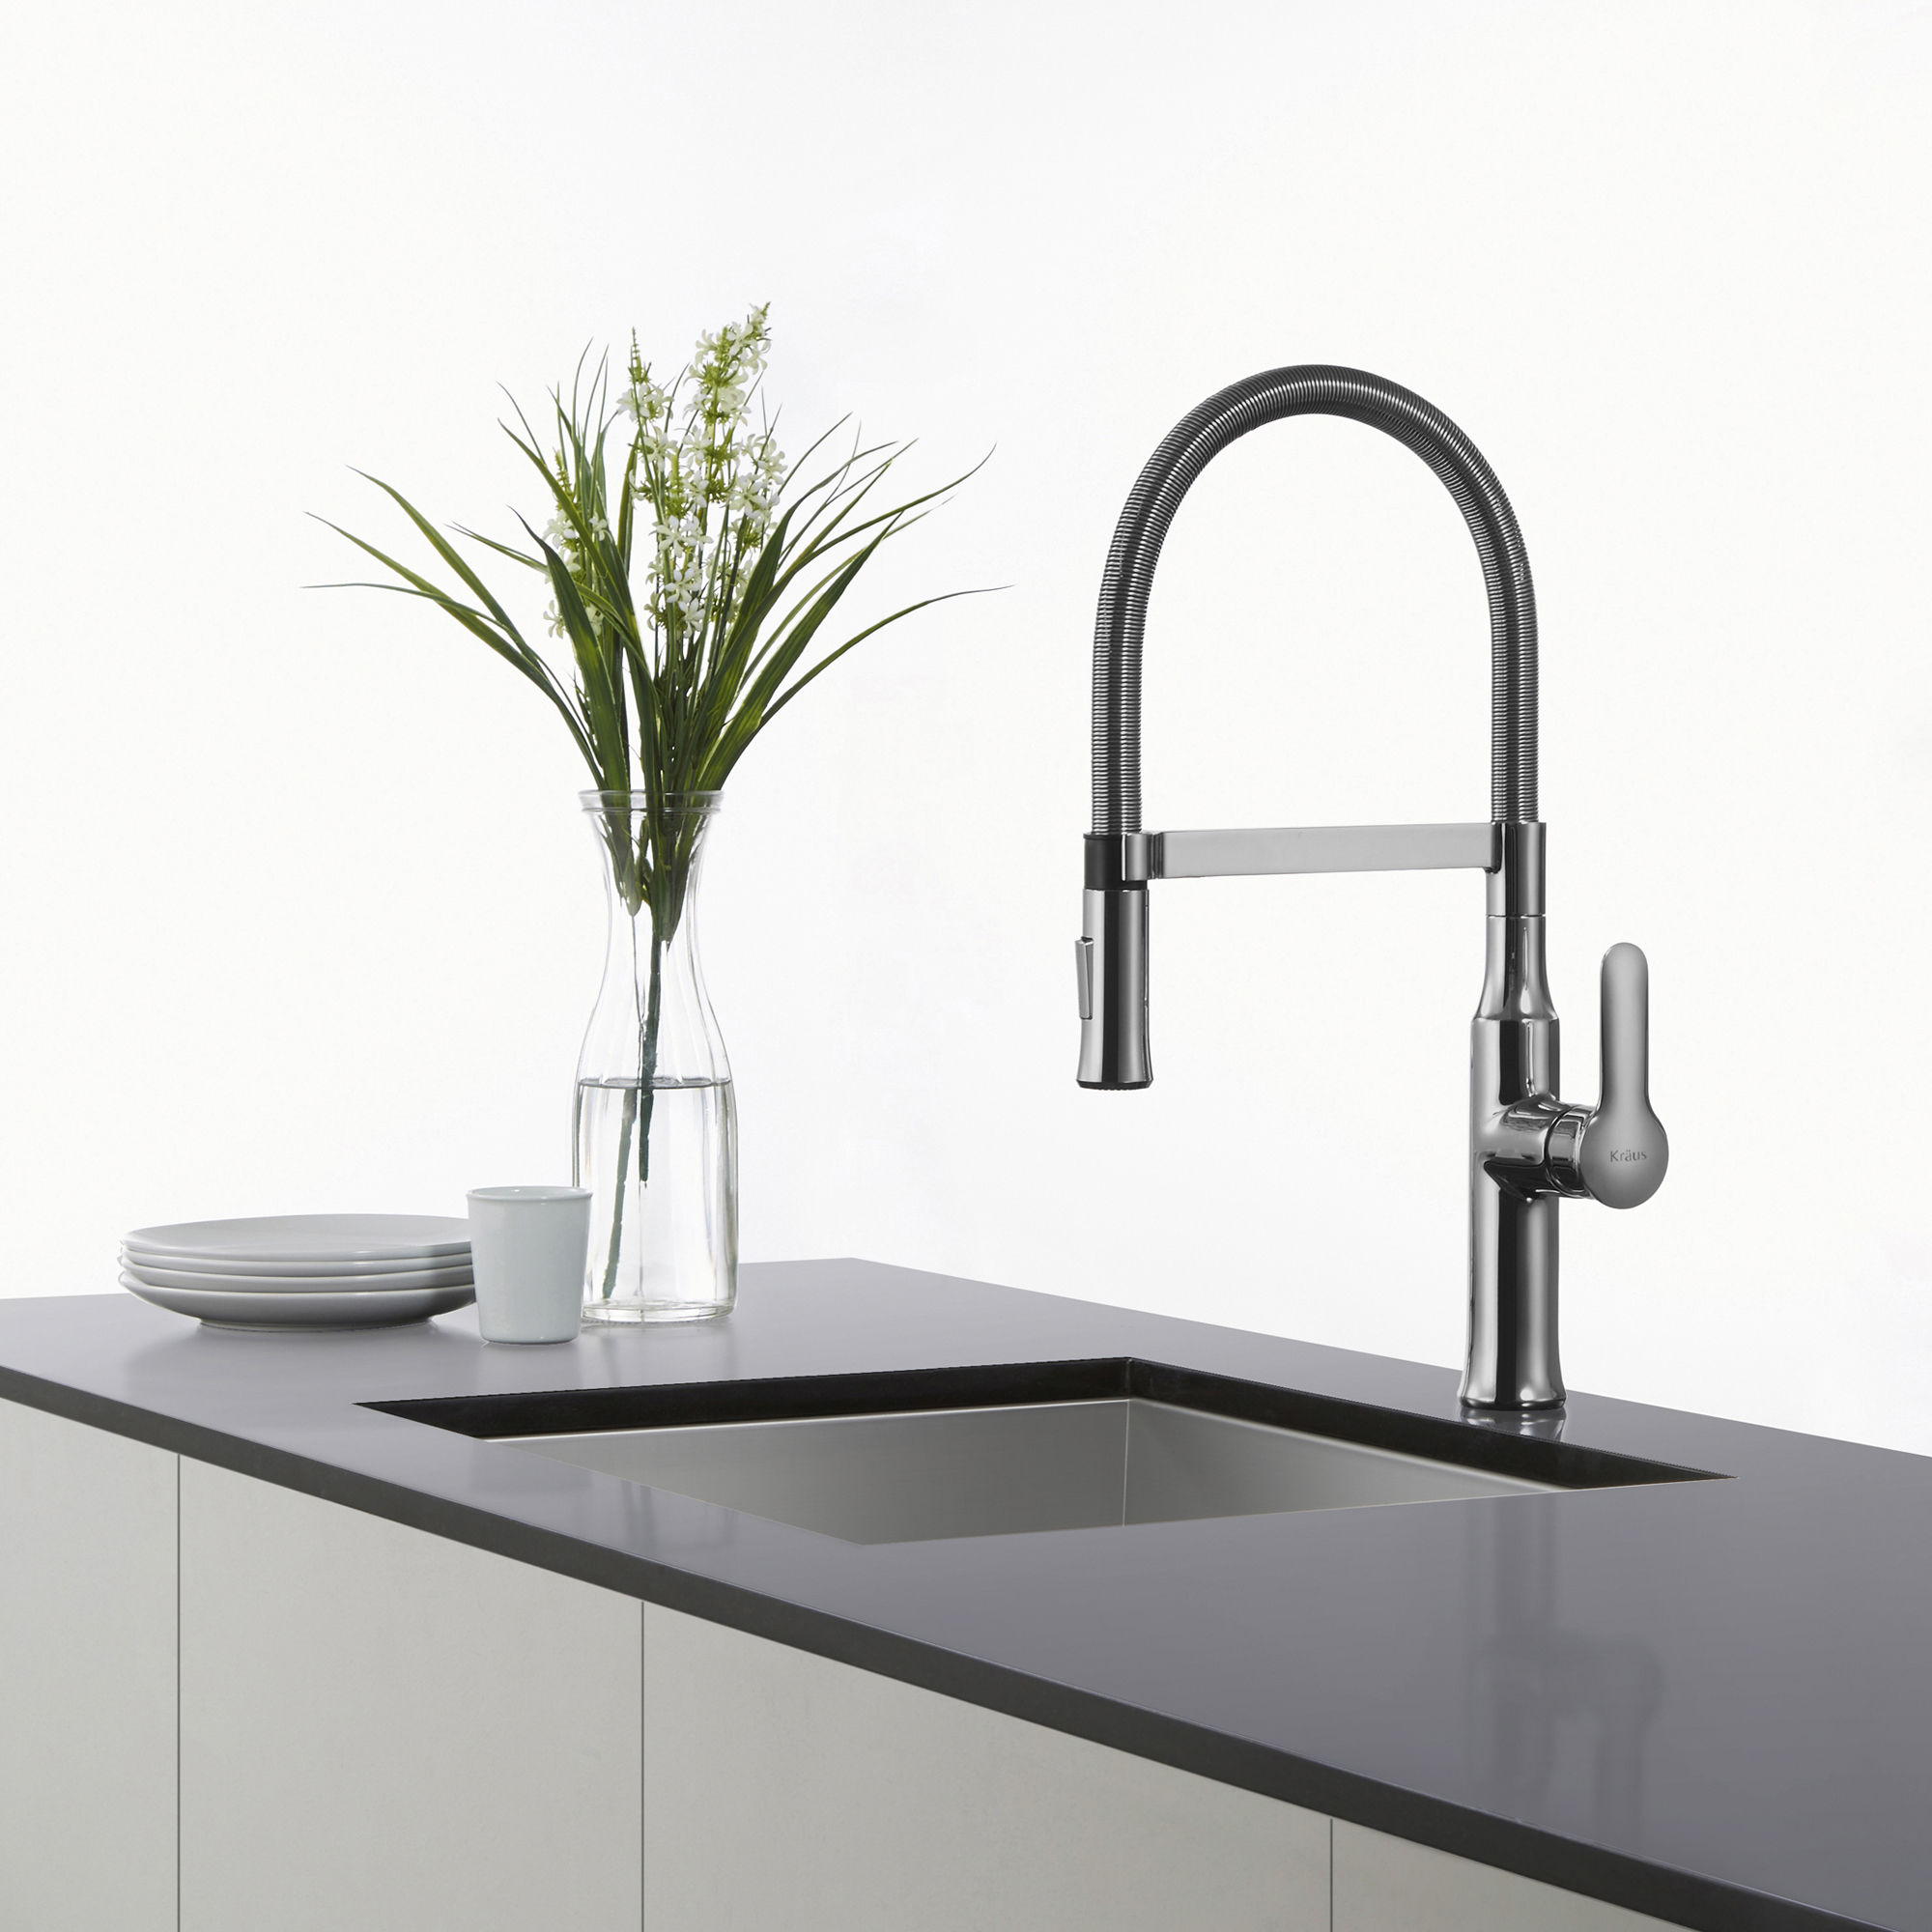 faucet farmhouse steel faucets bowl with and p single kraus kitchen dispenser stainless sink soap